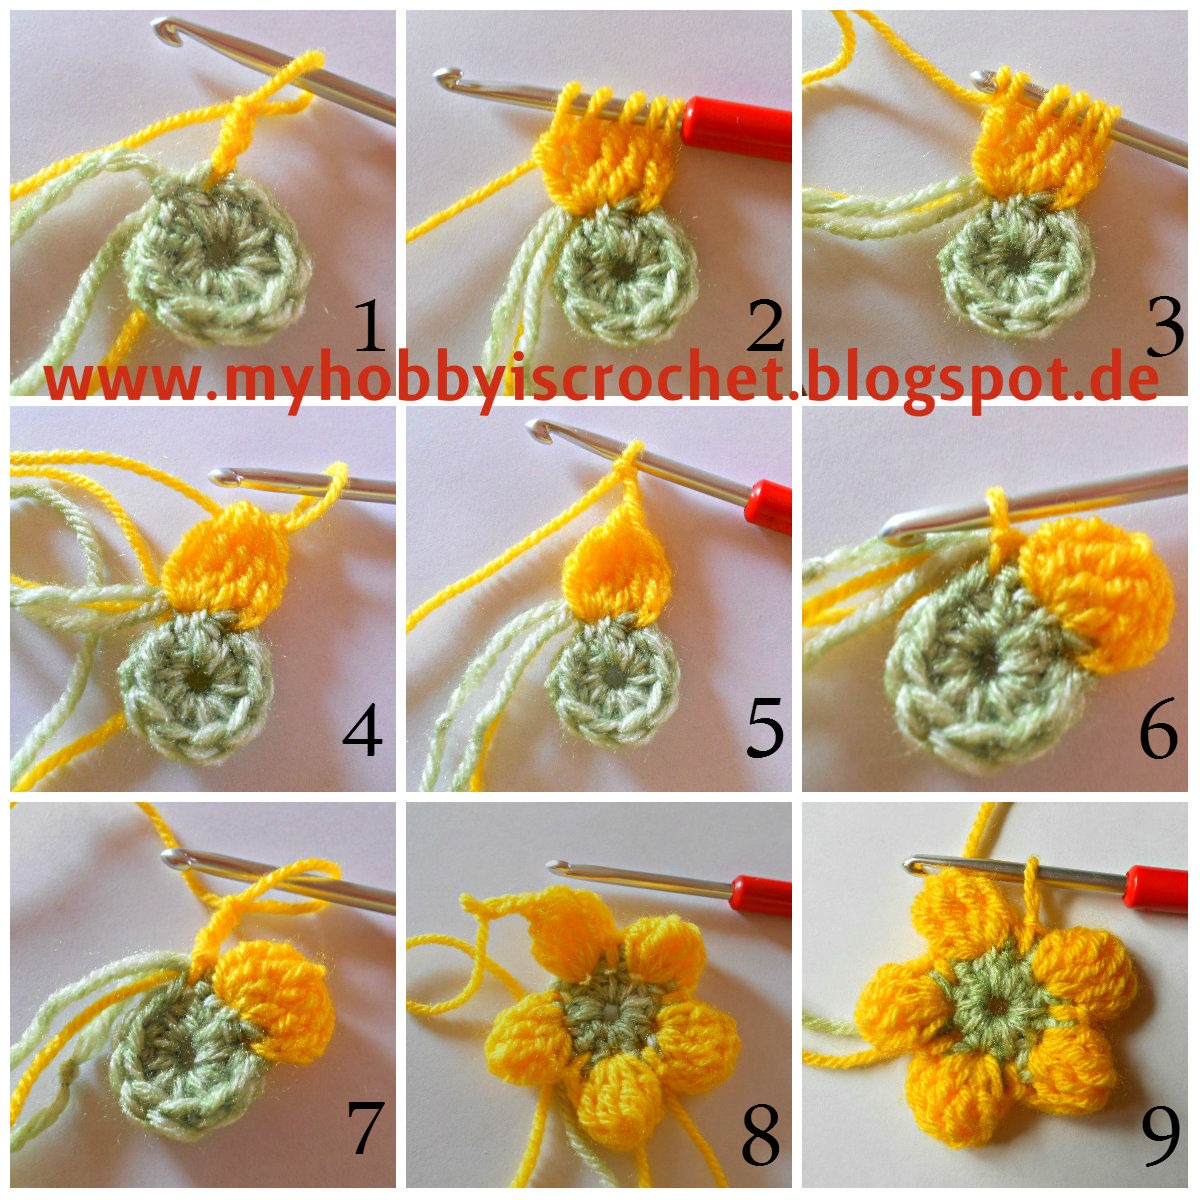 My Hobby Is Crochet: Crochet Dahlia Flower - Free Pattern ...